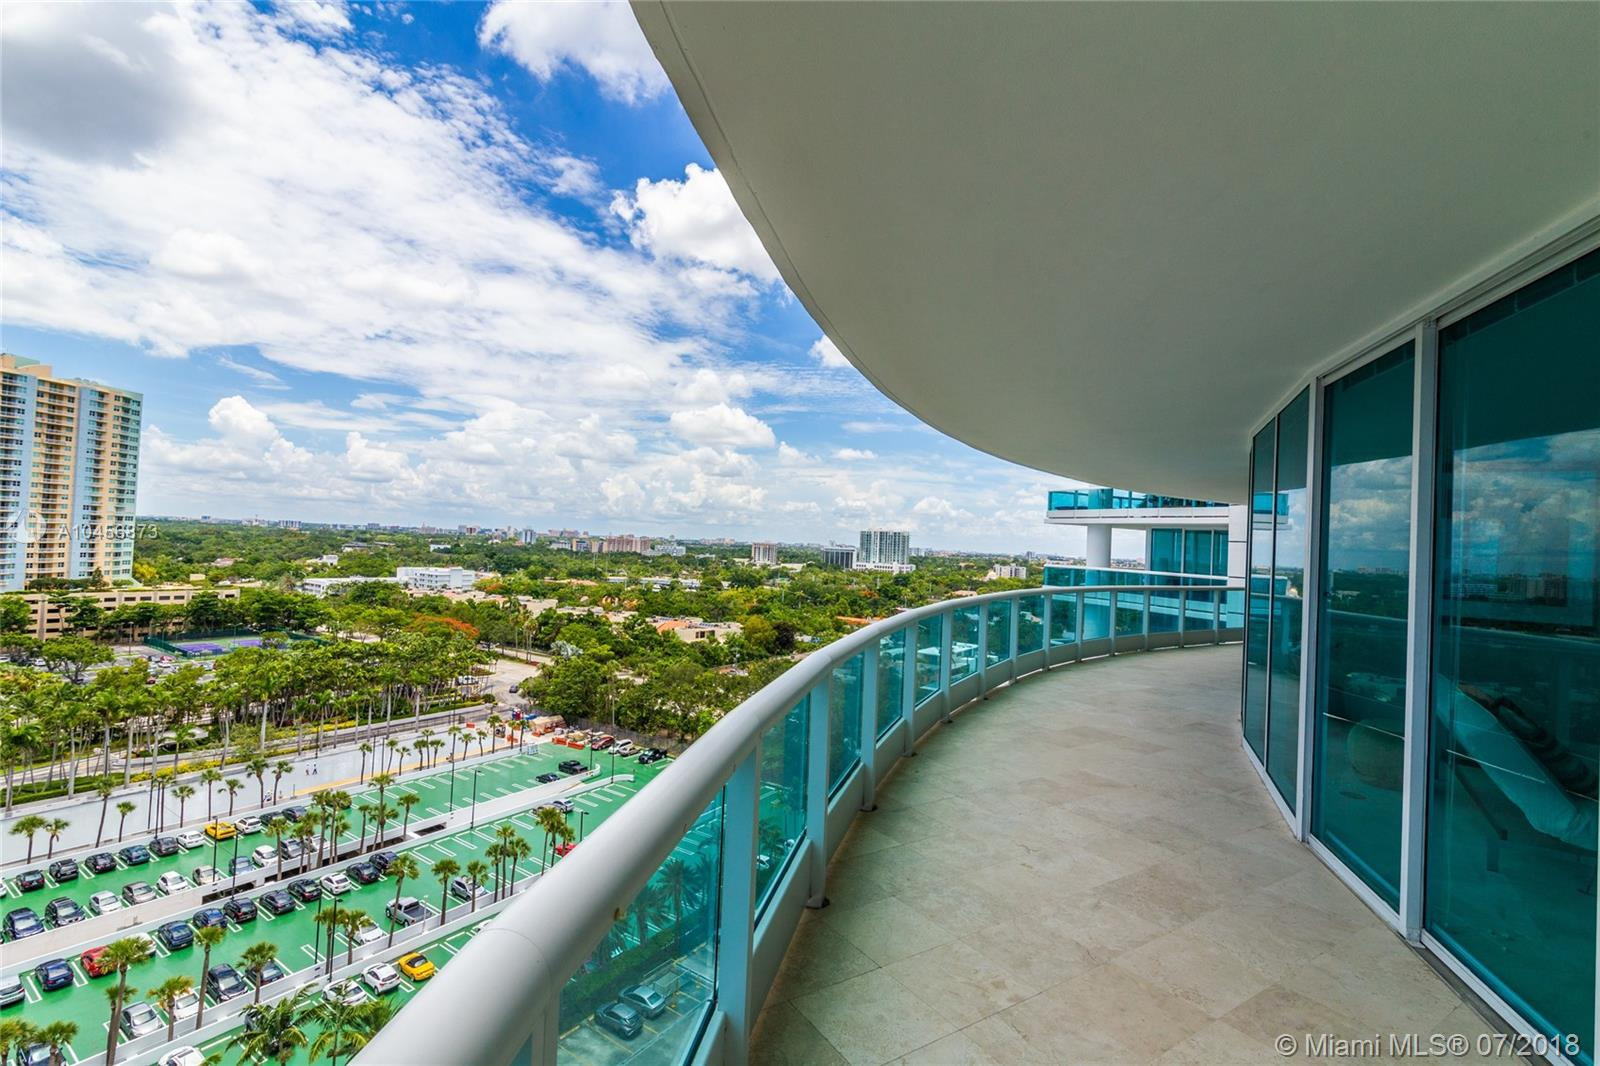 2127 Brickell Avenue, Miami, FL 33129, Bristol Tower Condominium #1702, Brickell, Miami A10456873 image #49